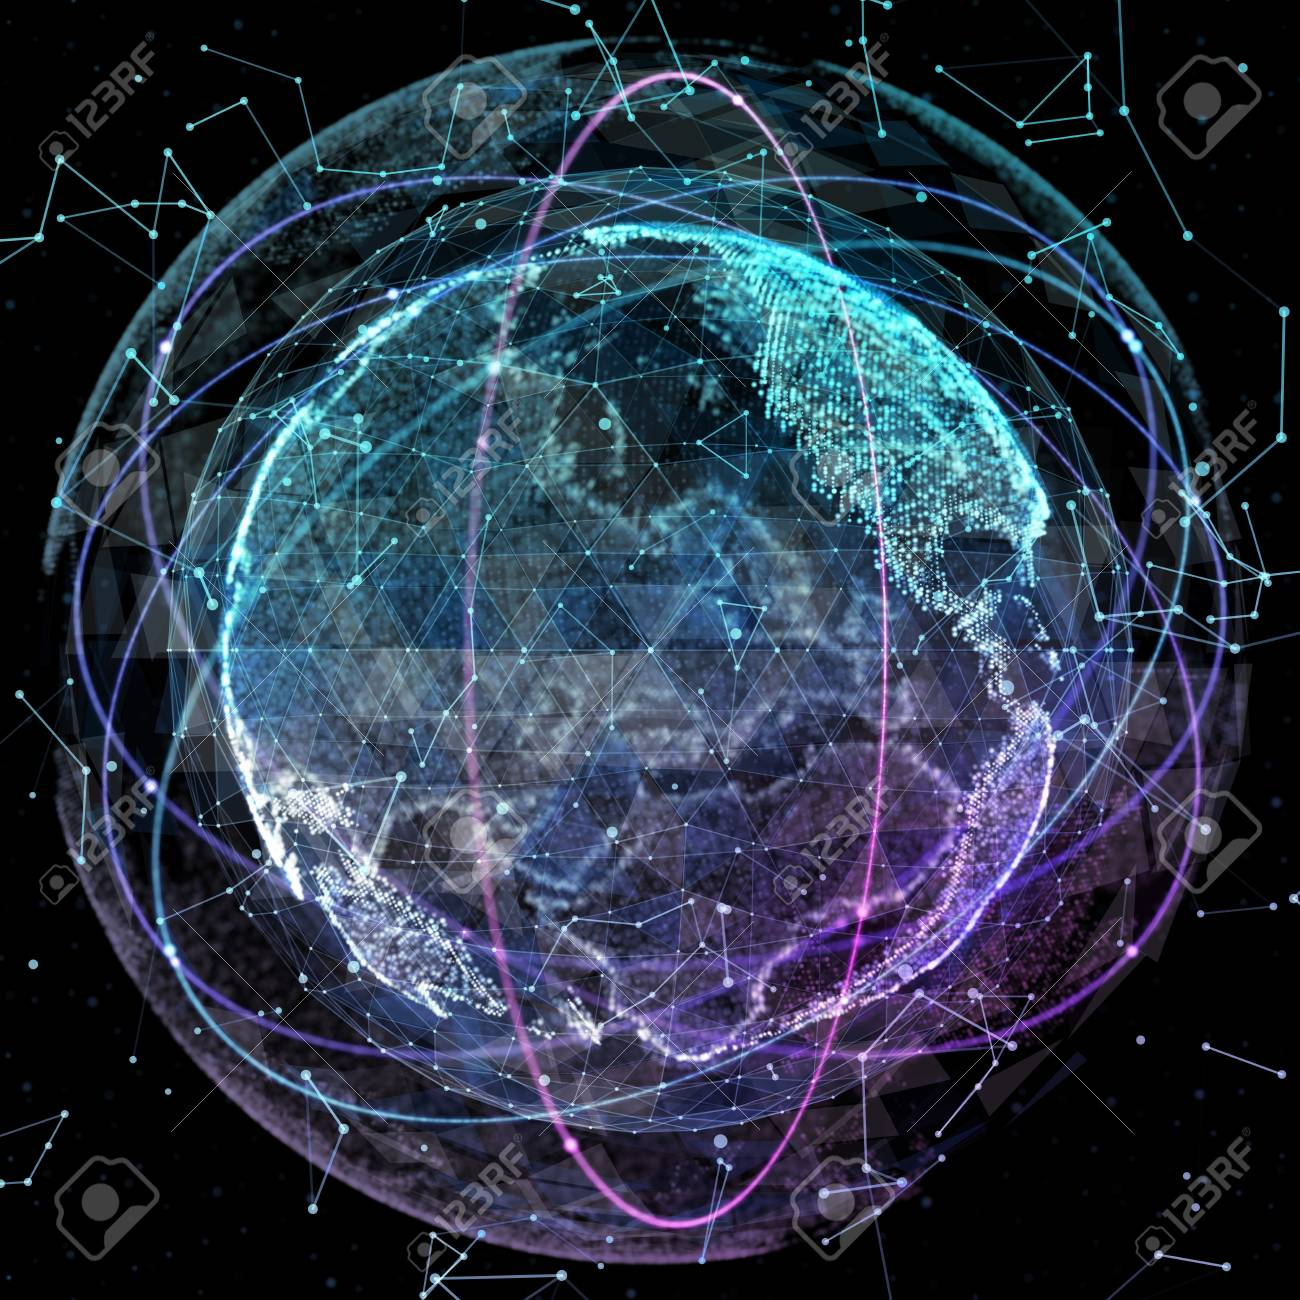 Digital world map global network satellite technology of earth digital world map global network satellite technology of earth stock photo 71357088 gumiabroncs Image collections